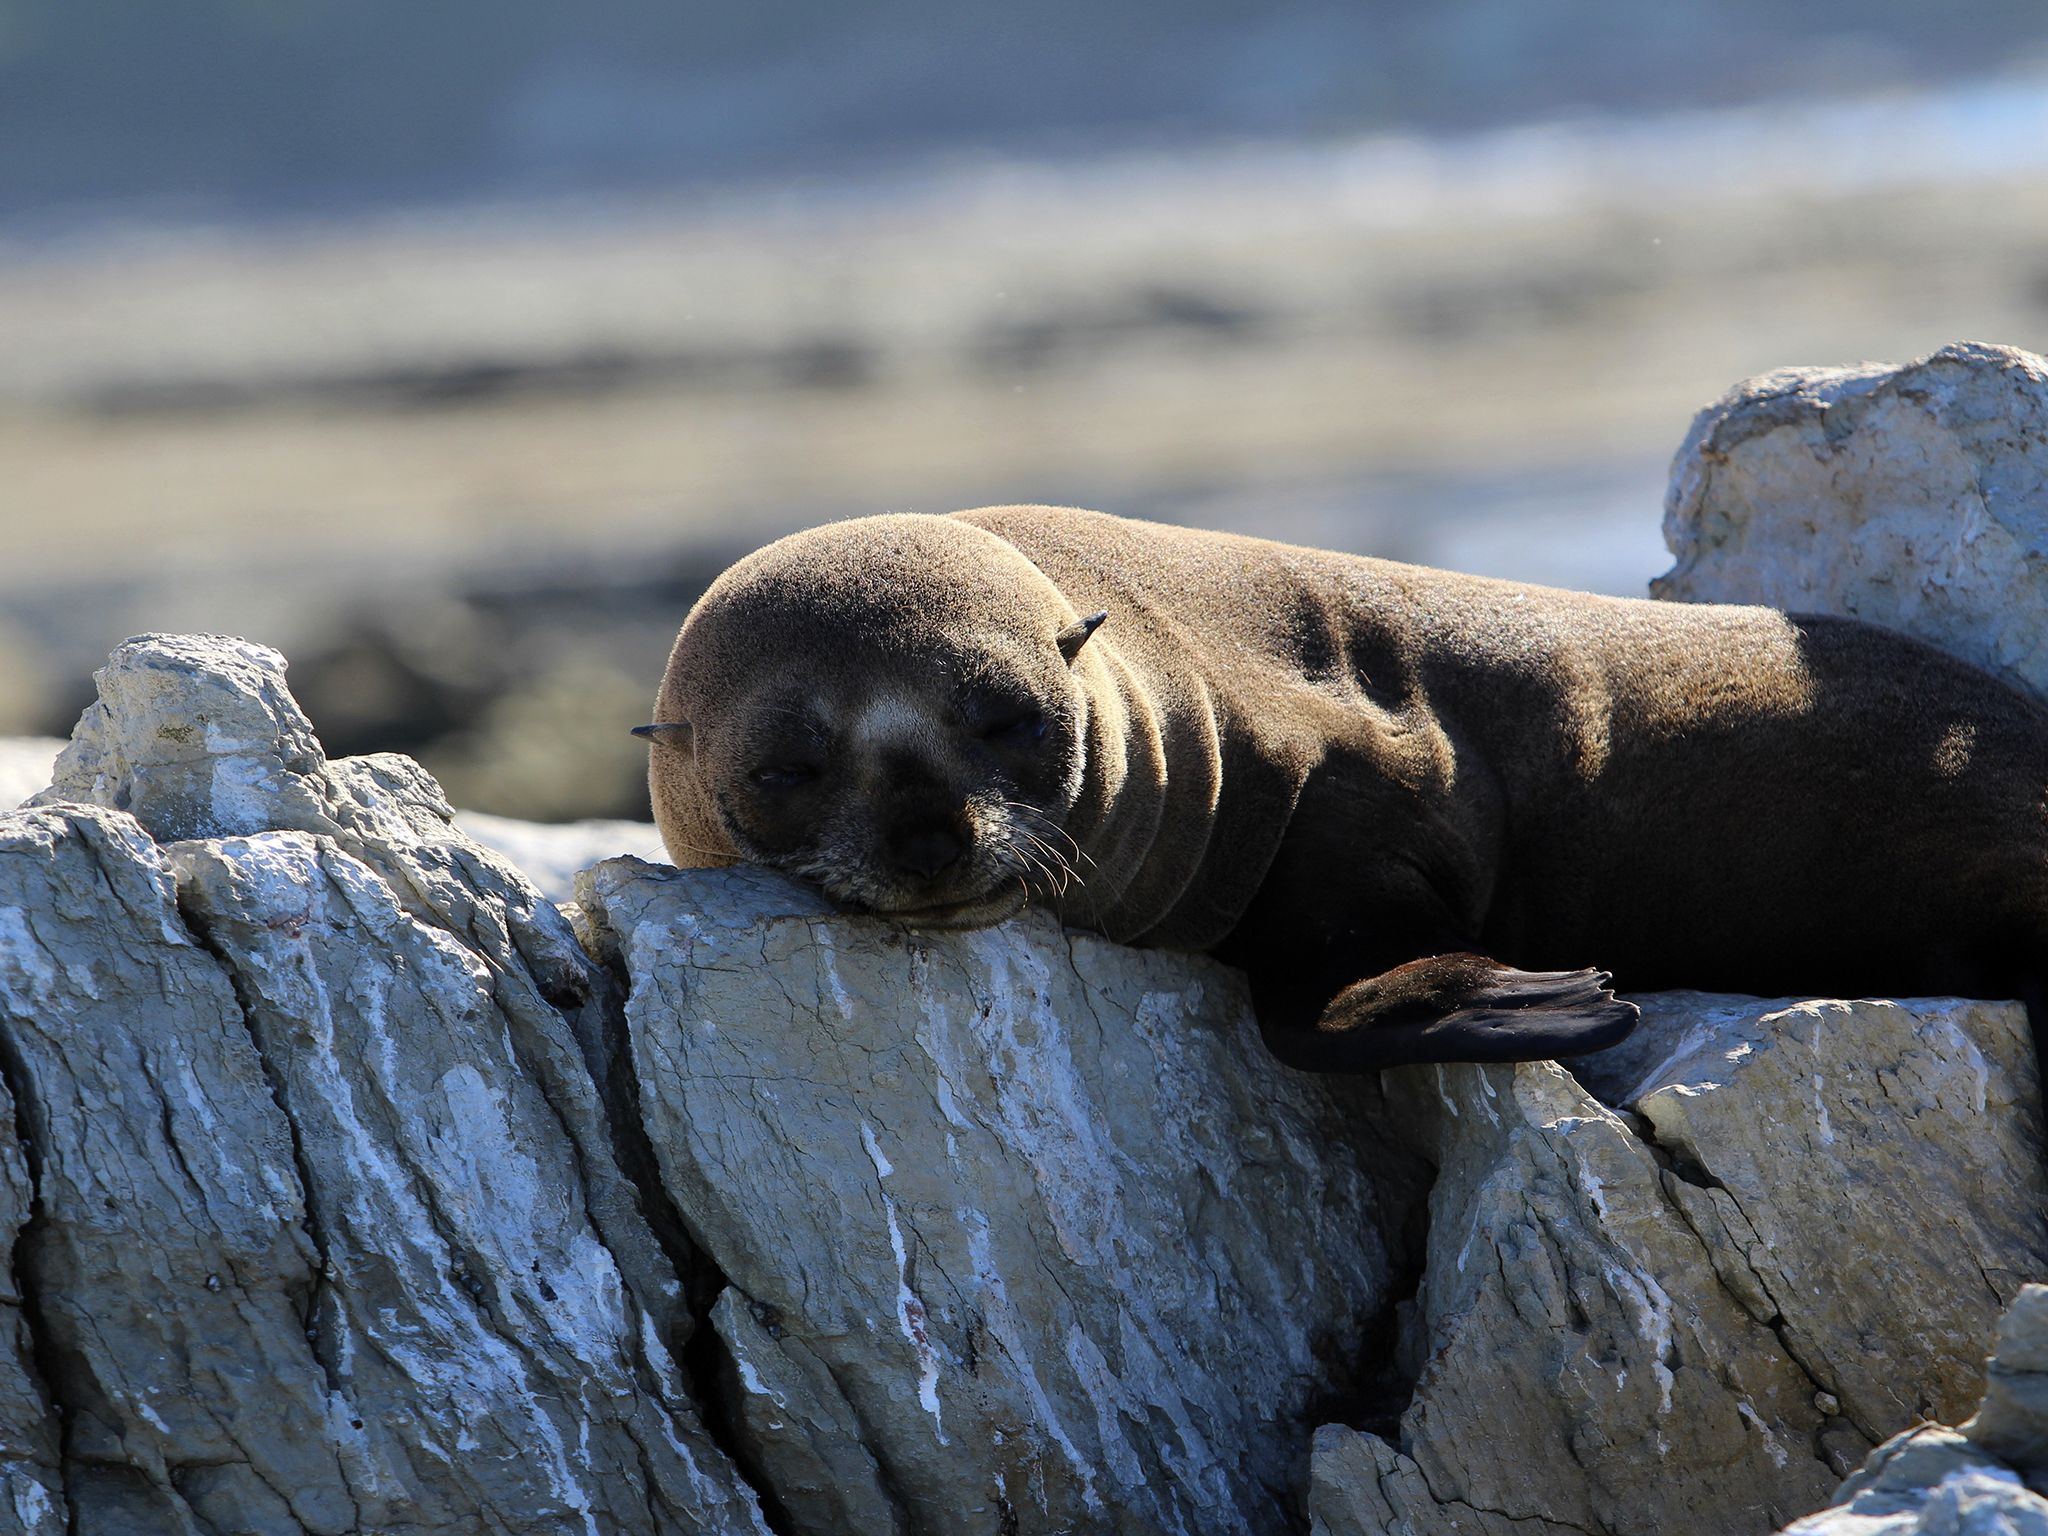 Young fur seal pup resting on a coastal rock formation on the beaches of Kaikoura, New Zealand,... [Photo of the day - March 2015]